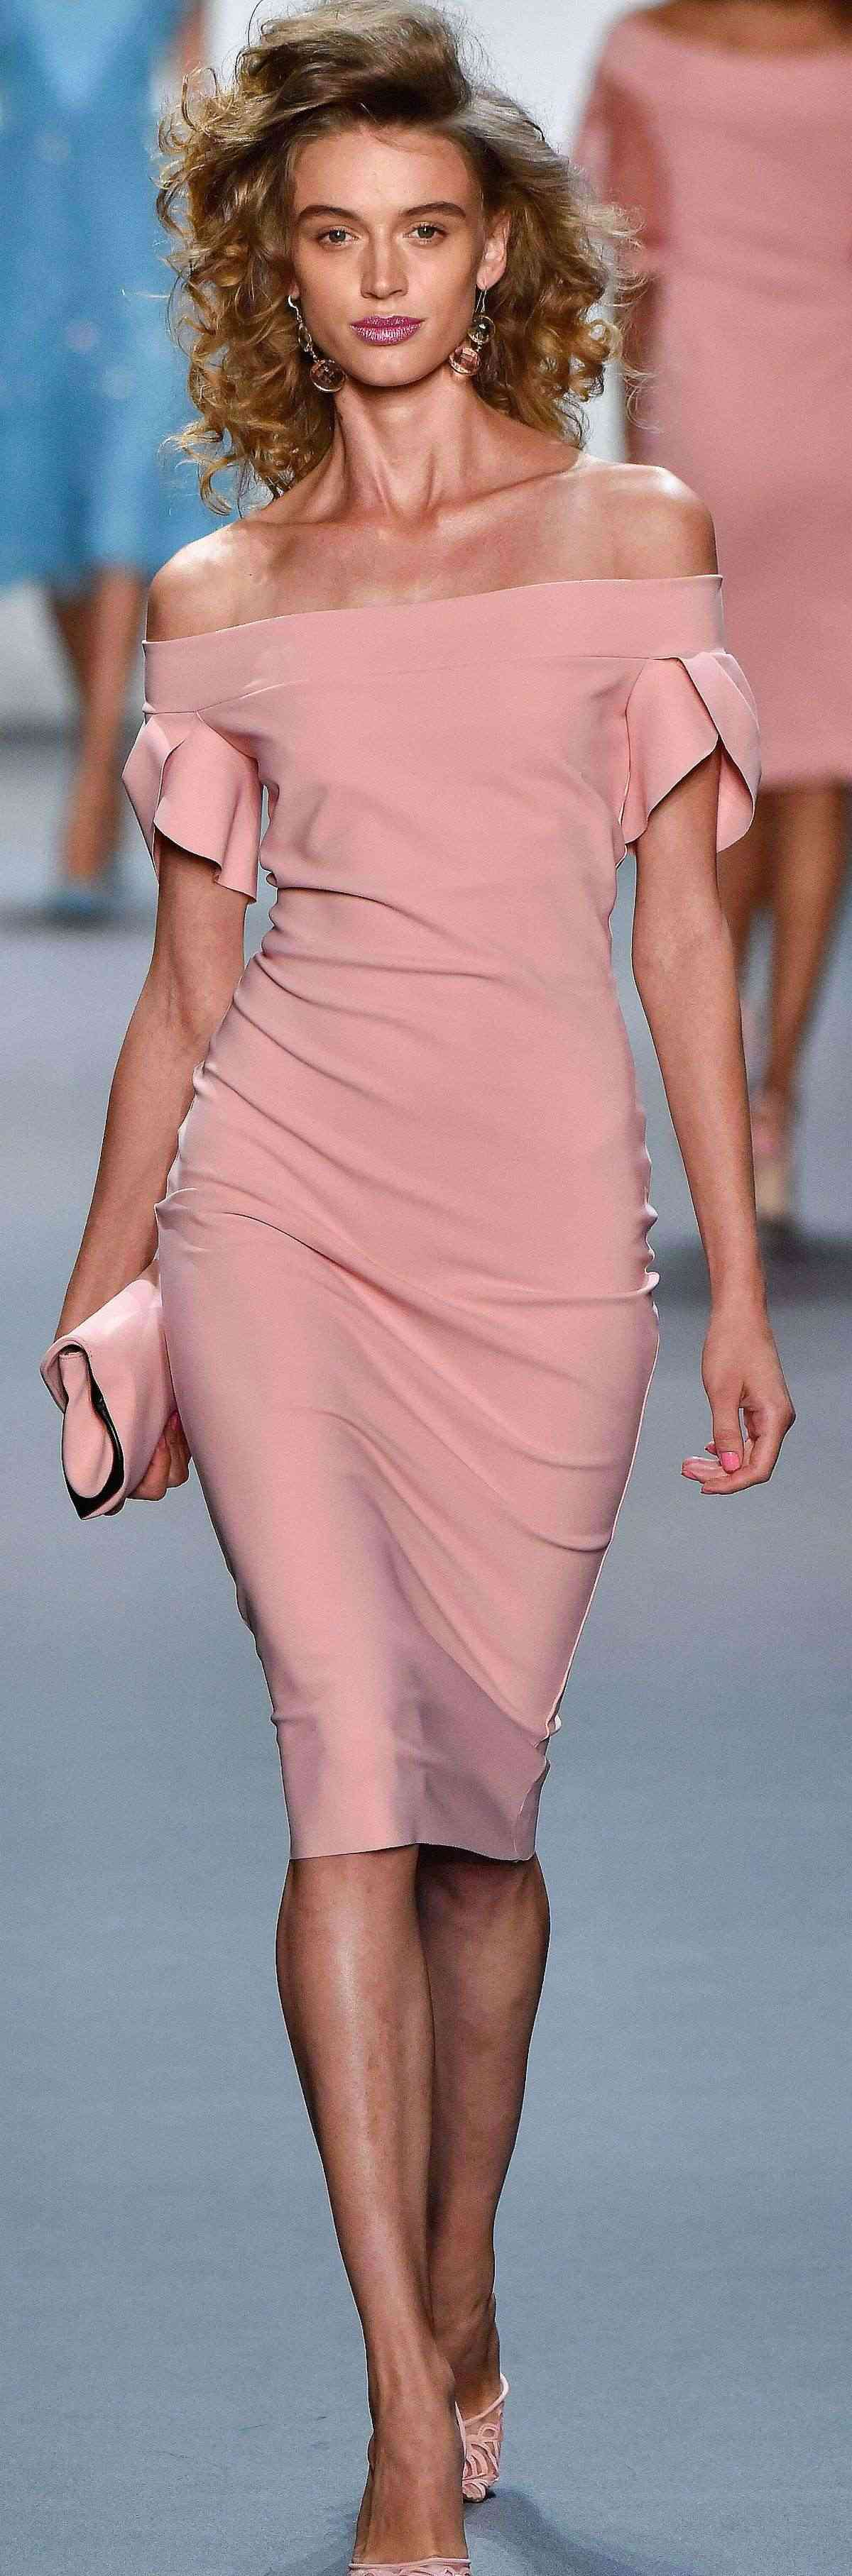 Pink sleeve dress idea for daily action 22 fashion